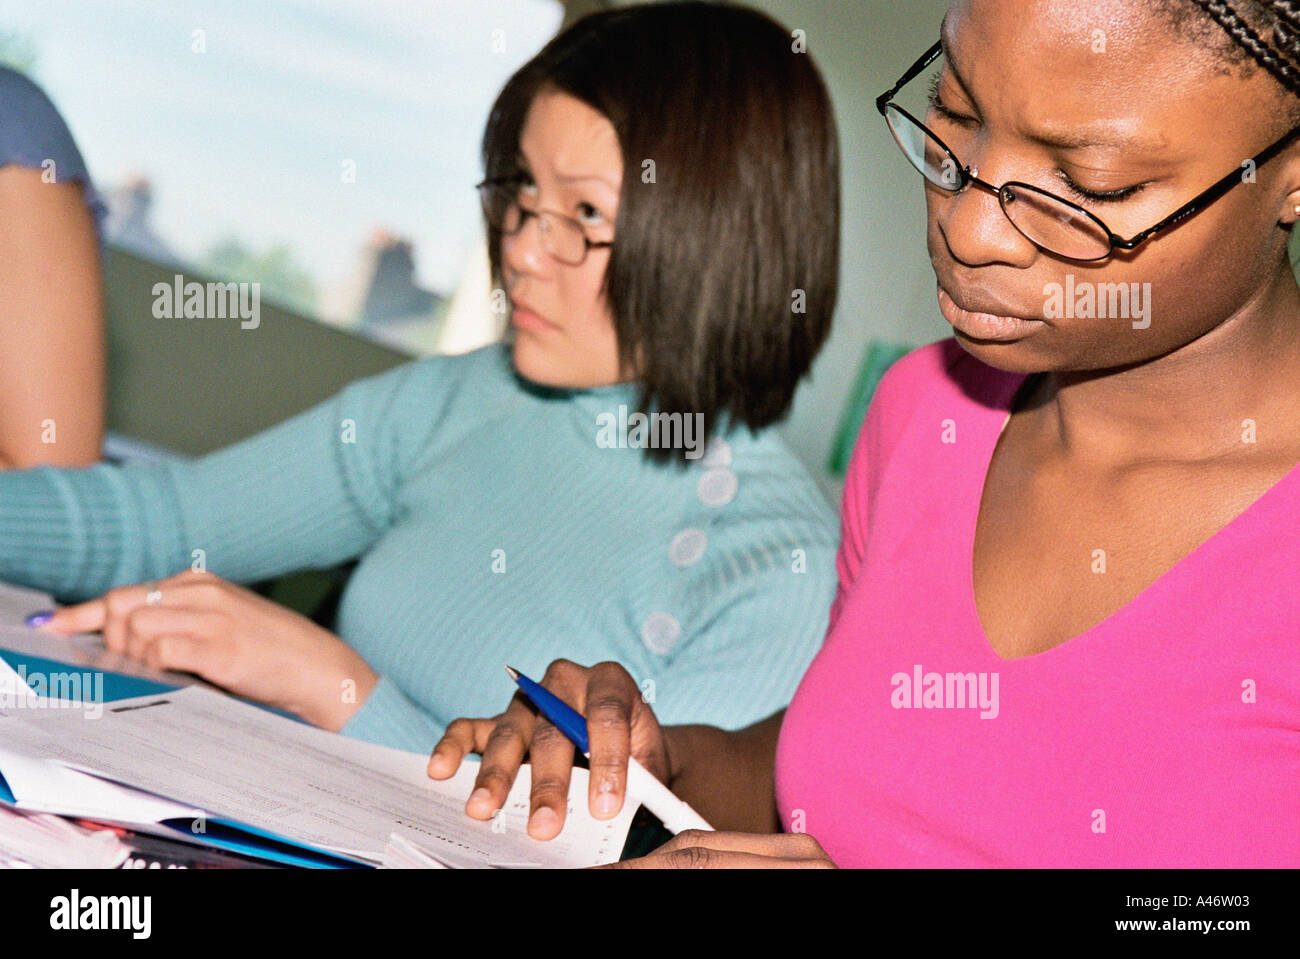 Higher education student - Stock Image